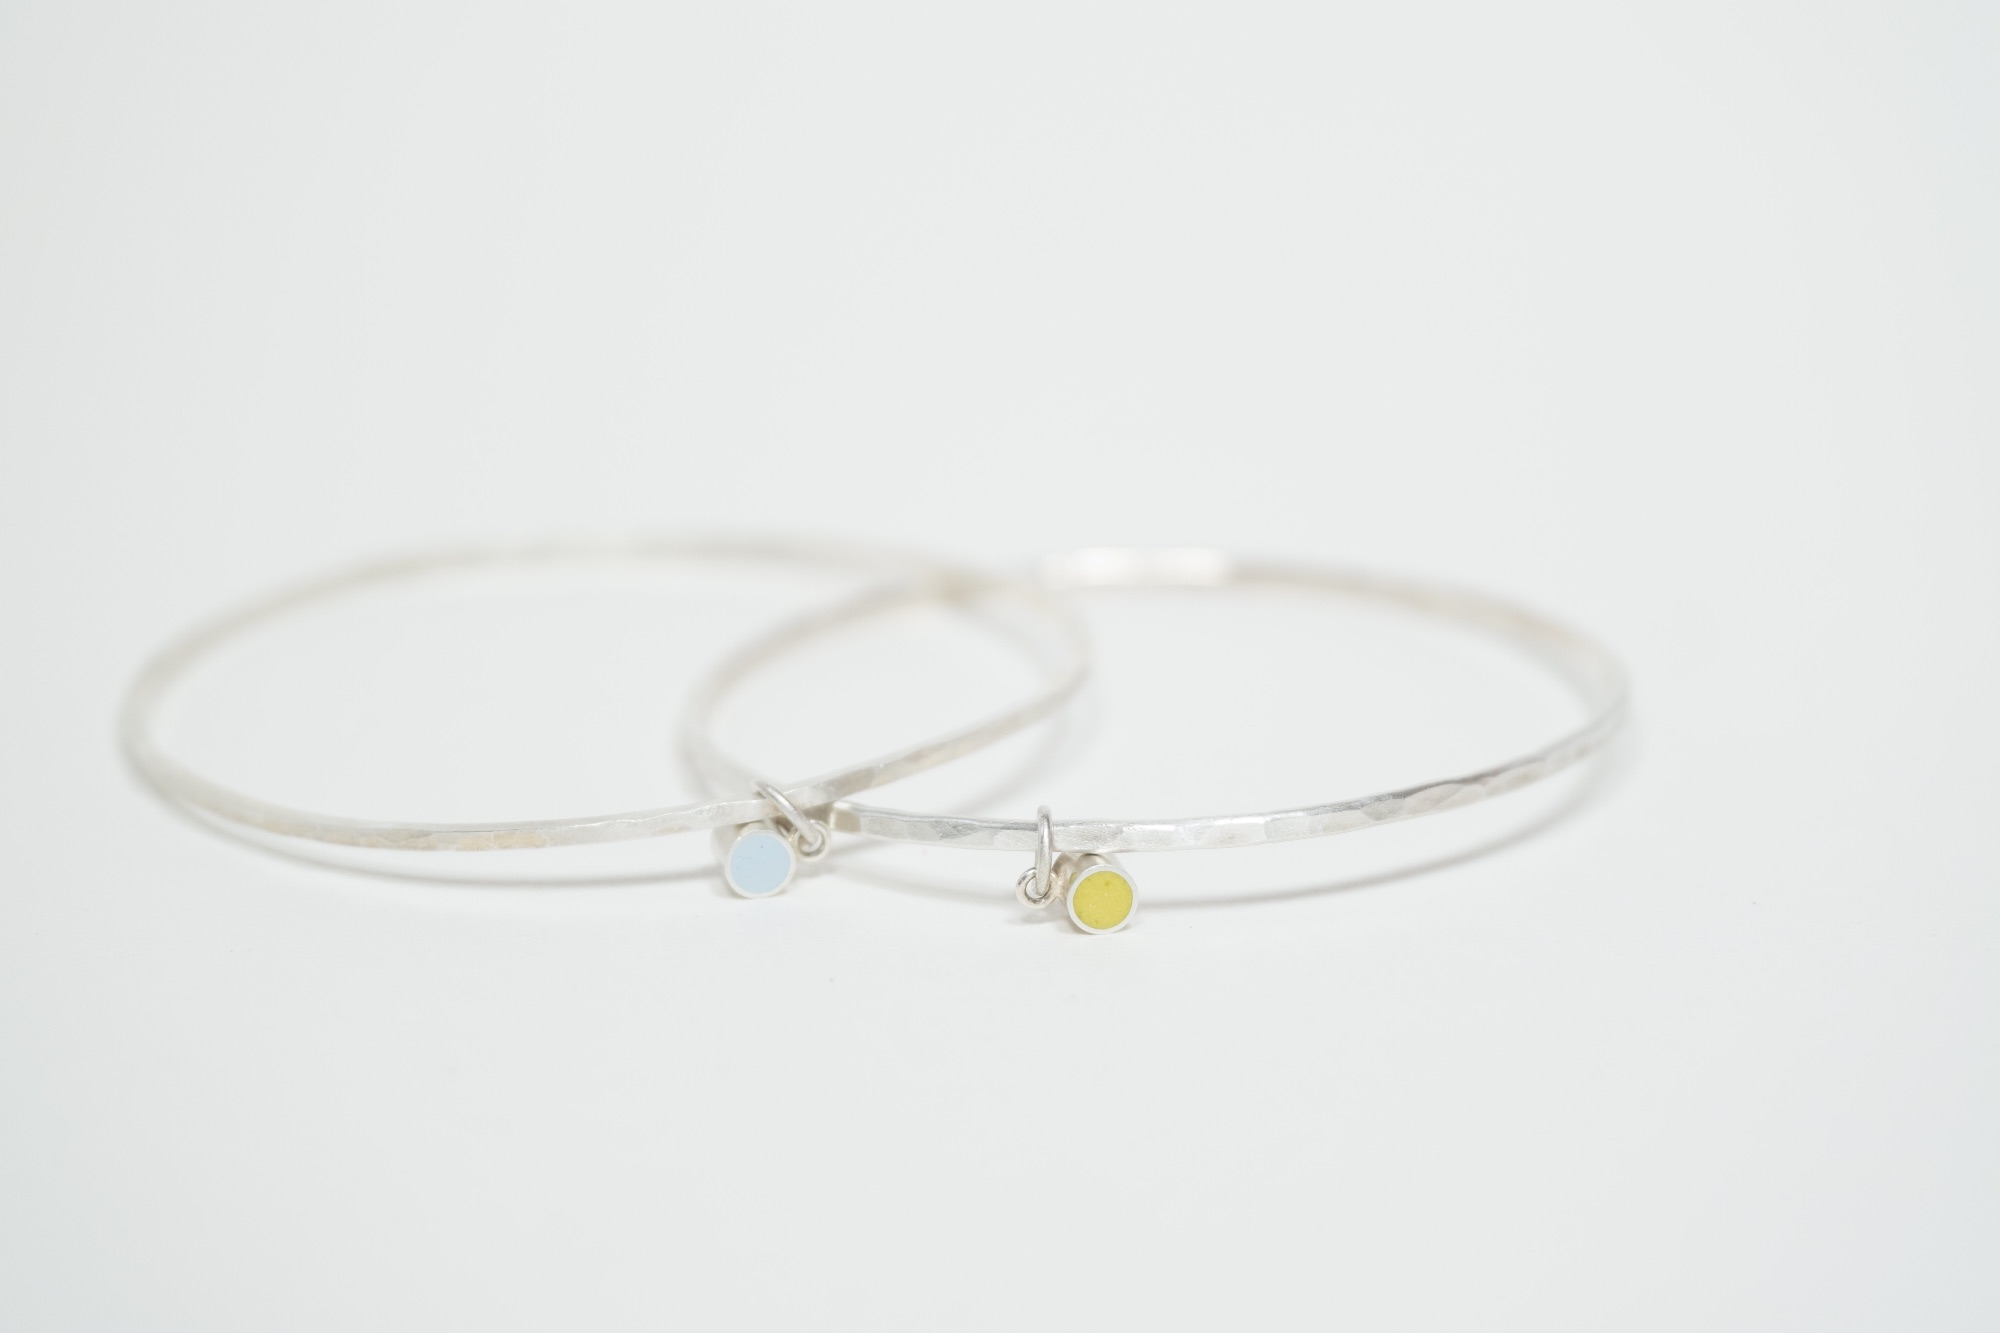 Colour Dot Charm Bangles Recycled Sterling Silver and Resin Clay by Colour Designs Jewellery